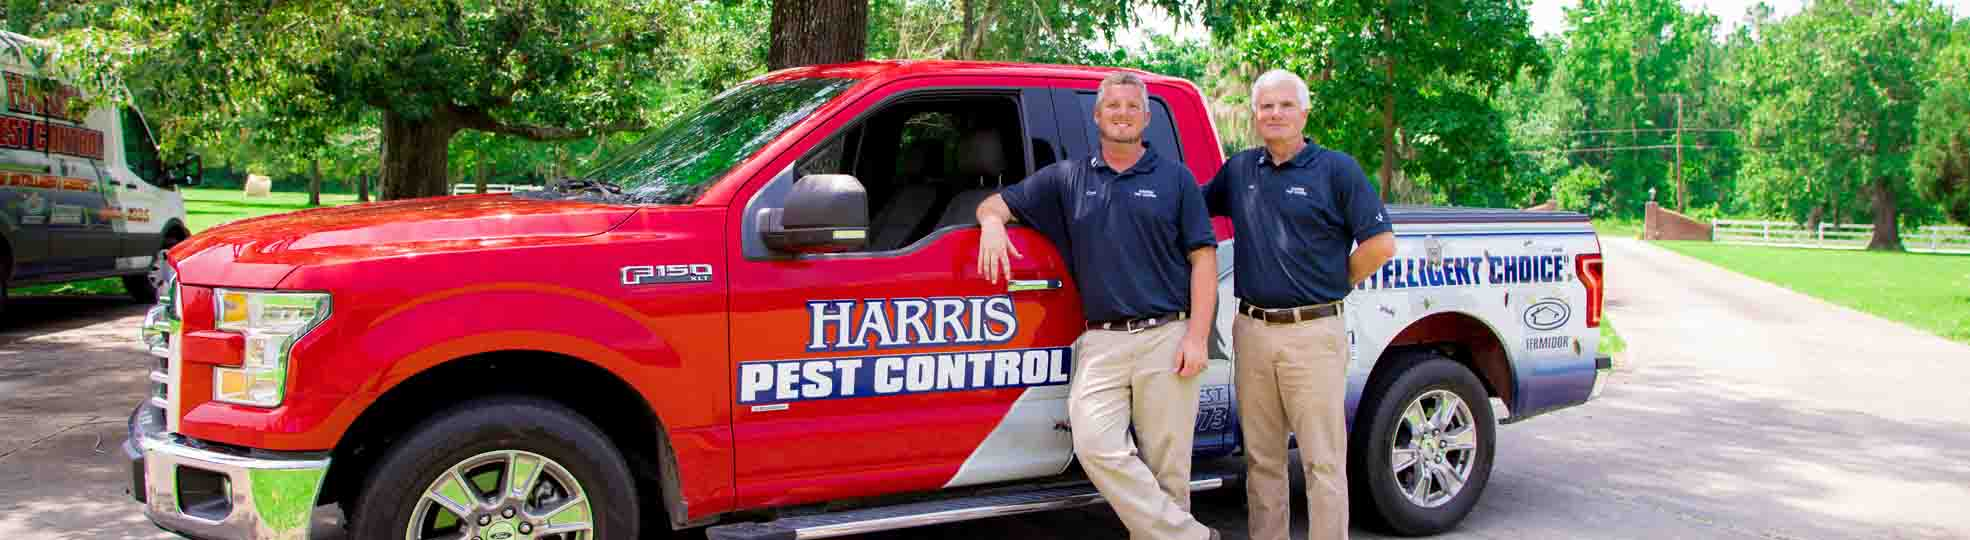 Harris Pest Control Hero Image